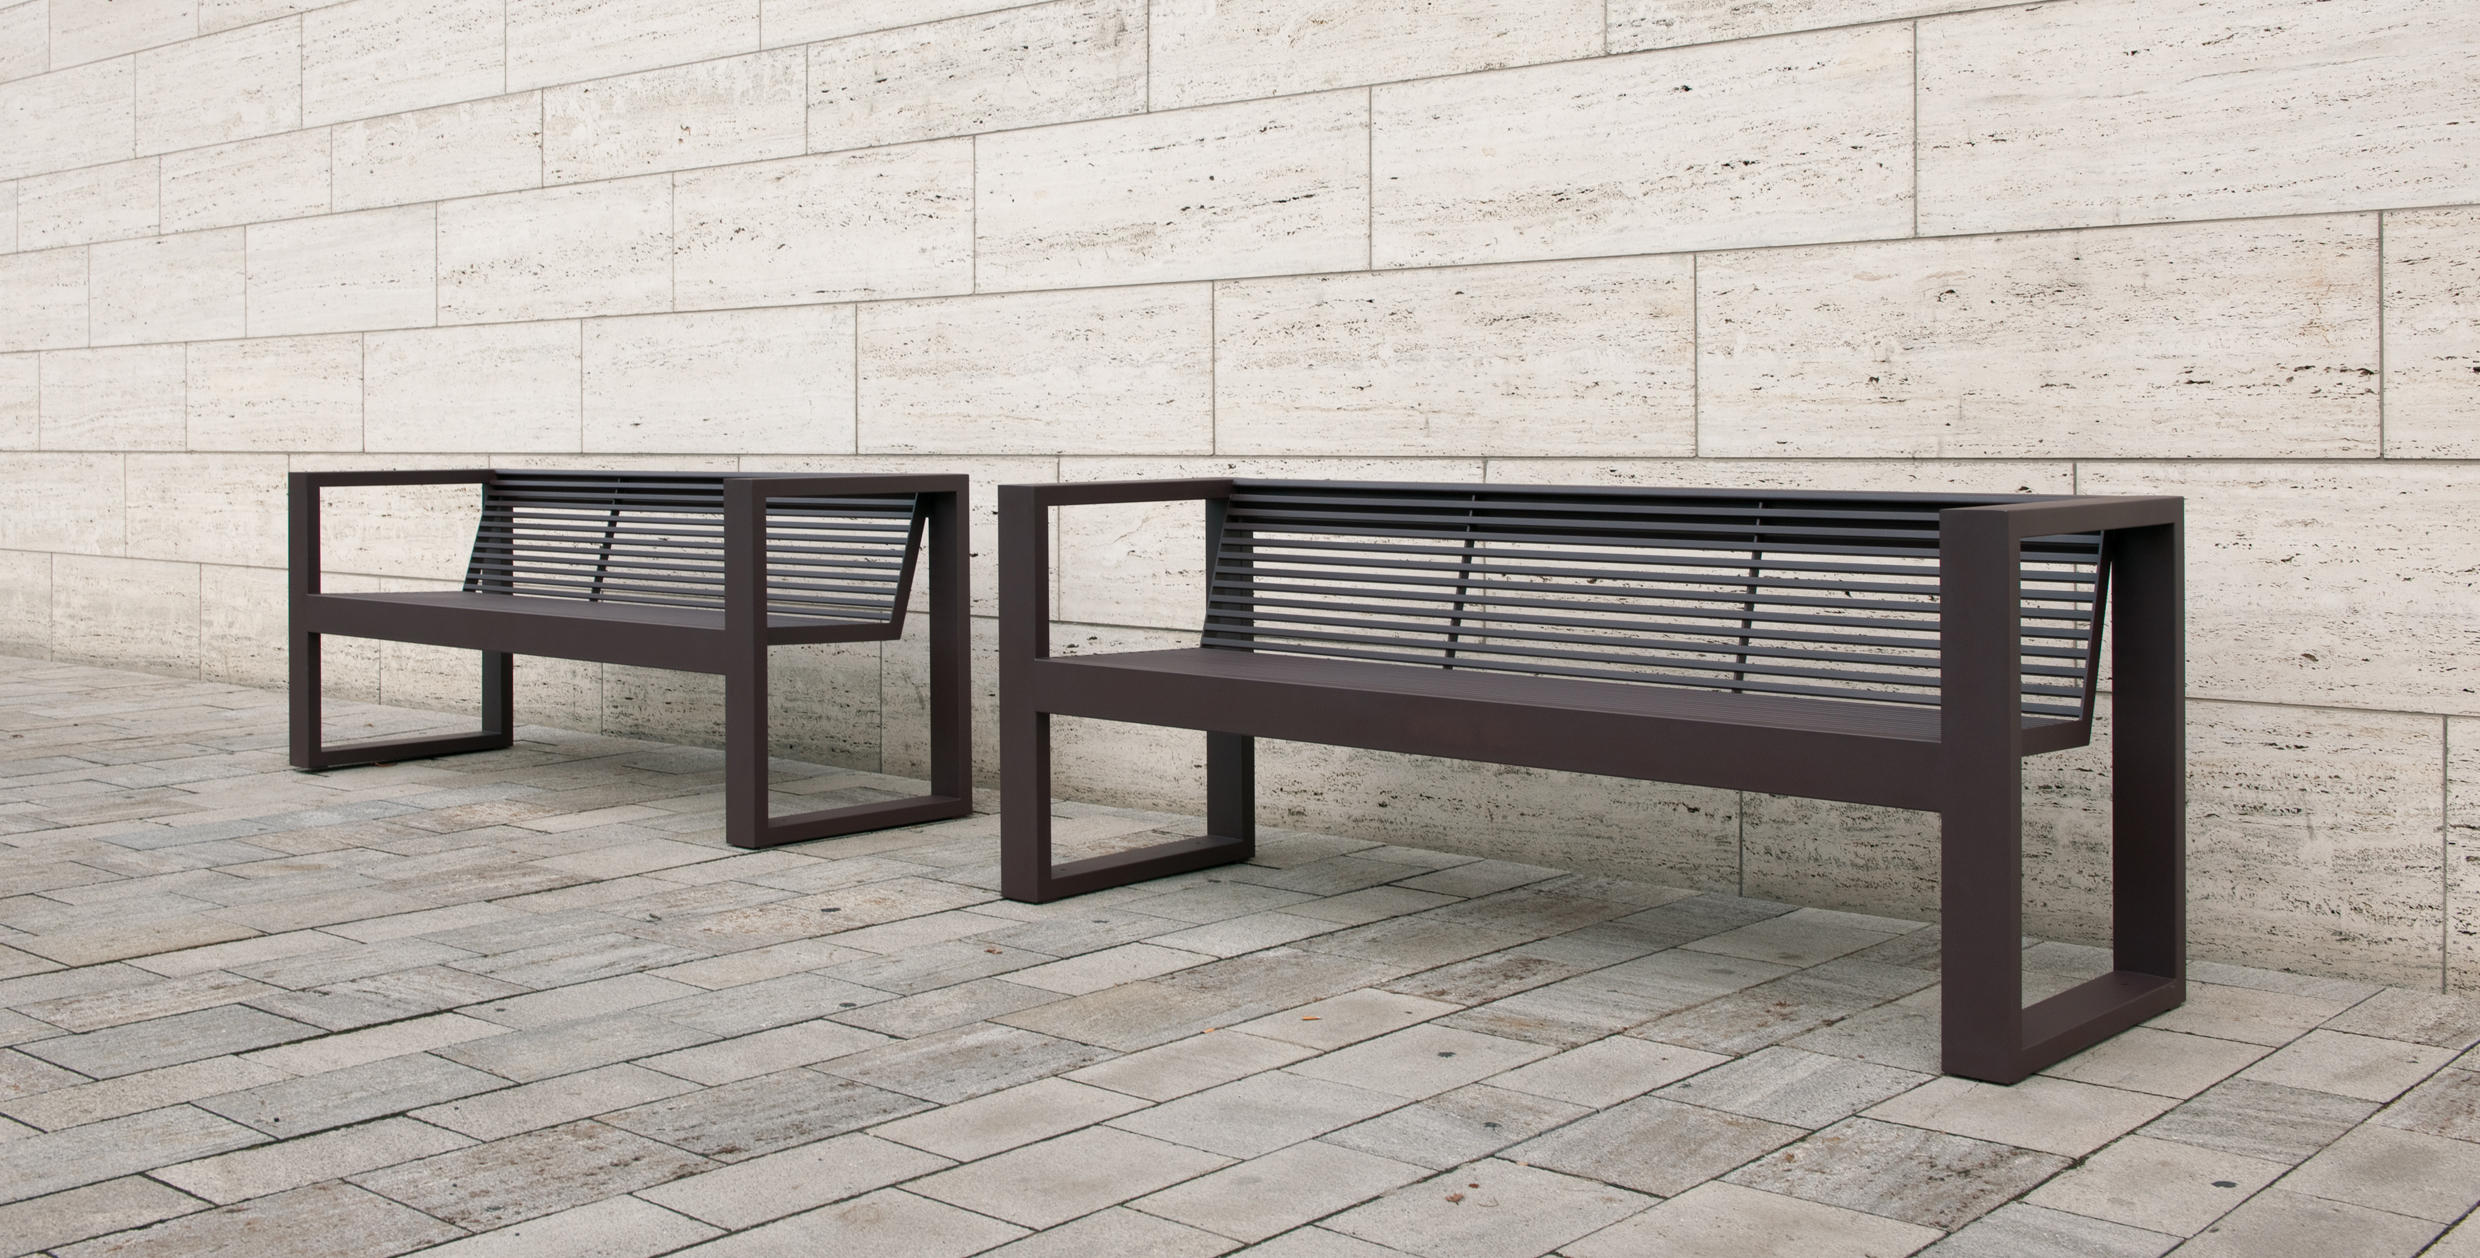 Sicorum m 300 bench with armrests panche da esterno for Arredo urbano in inglese